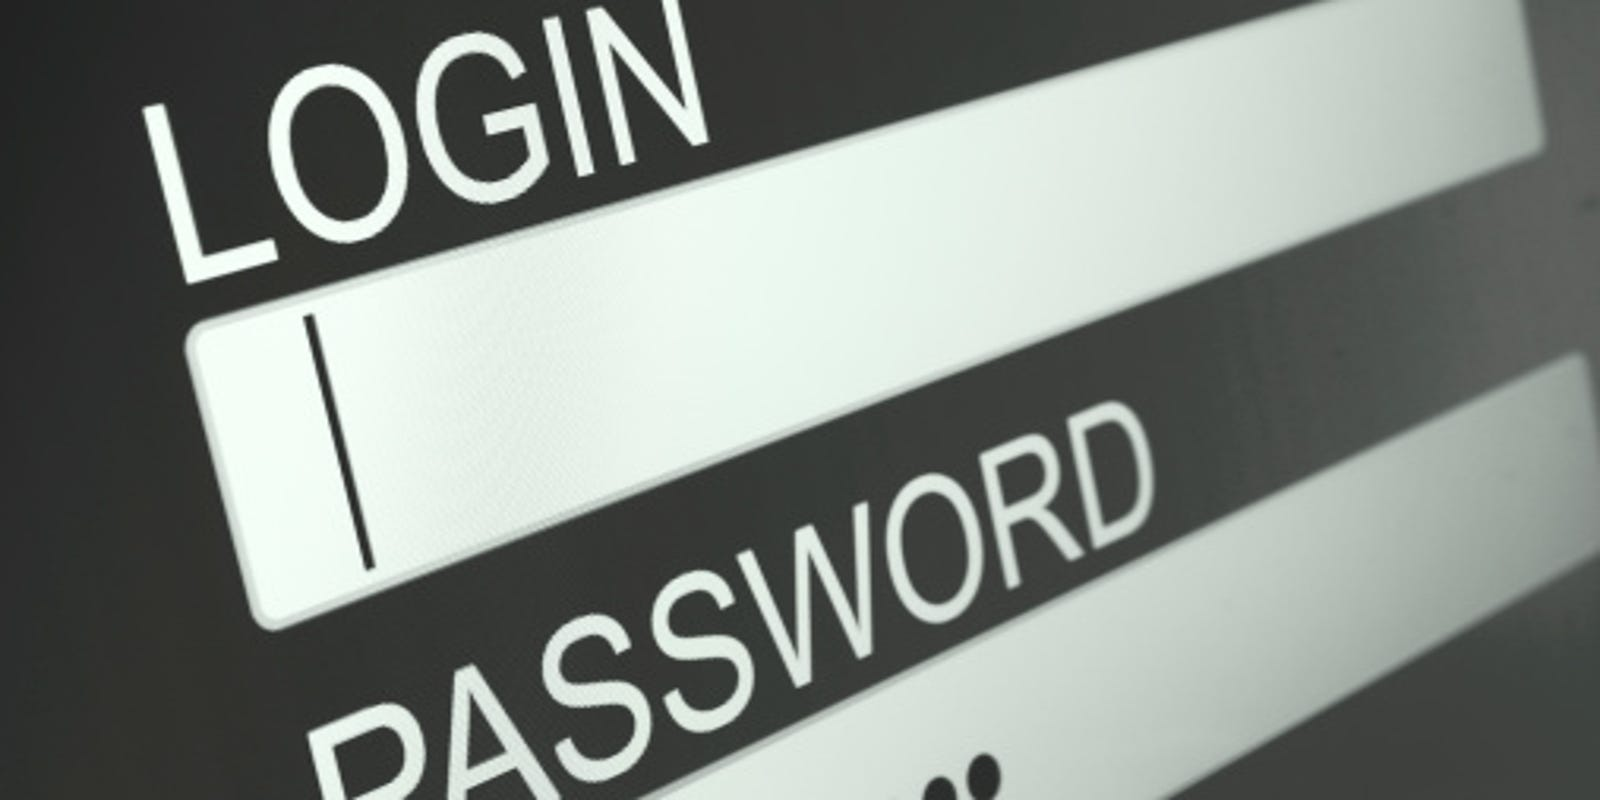 Don't leave grieving relatives searching for your passwords: Here's how to organize your digital life before you die